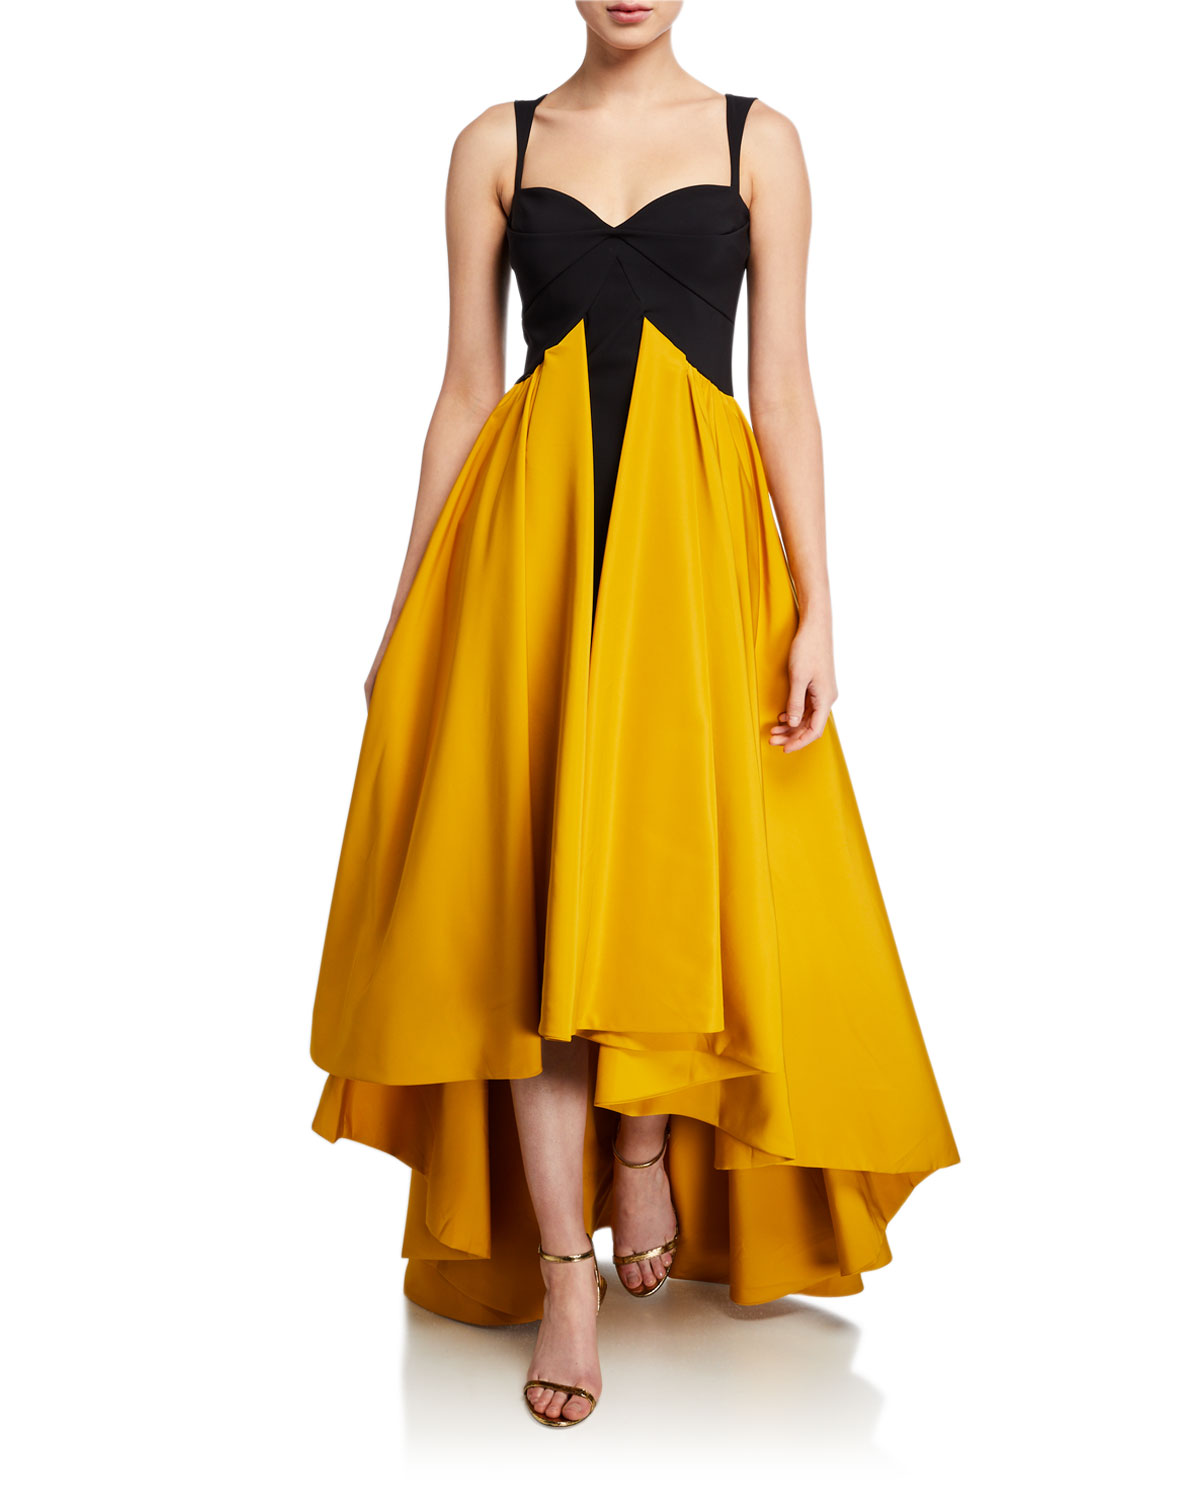 Chiara Boni La Petite Robe Sweetheart Taffeta High-Low Sleeveless Gown